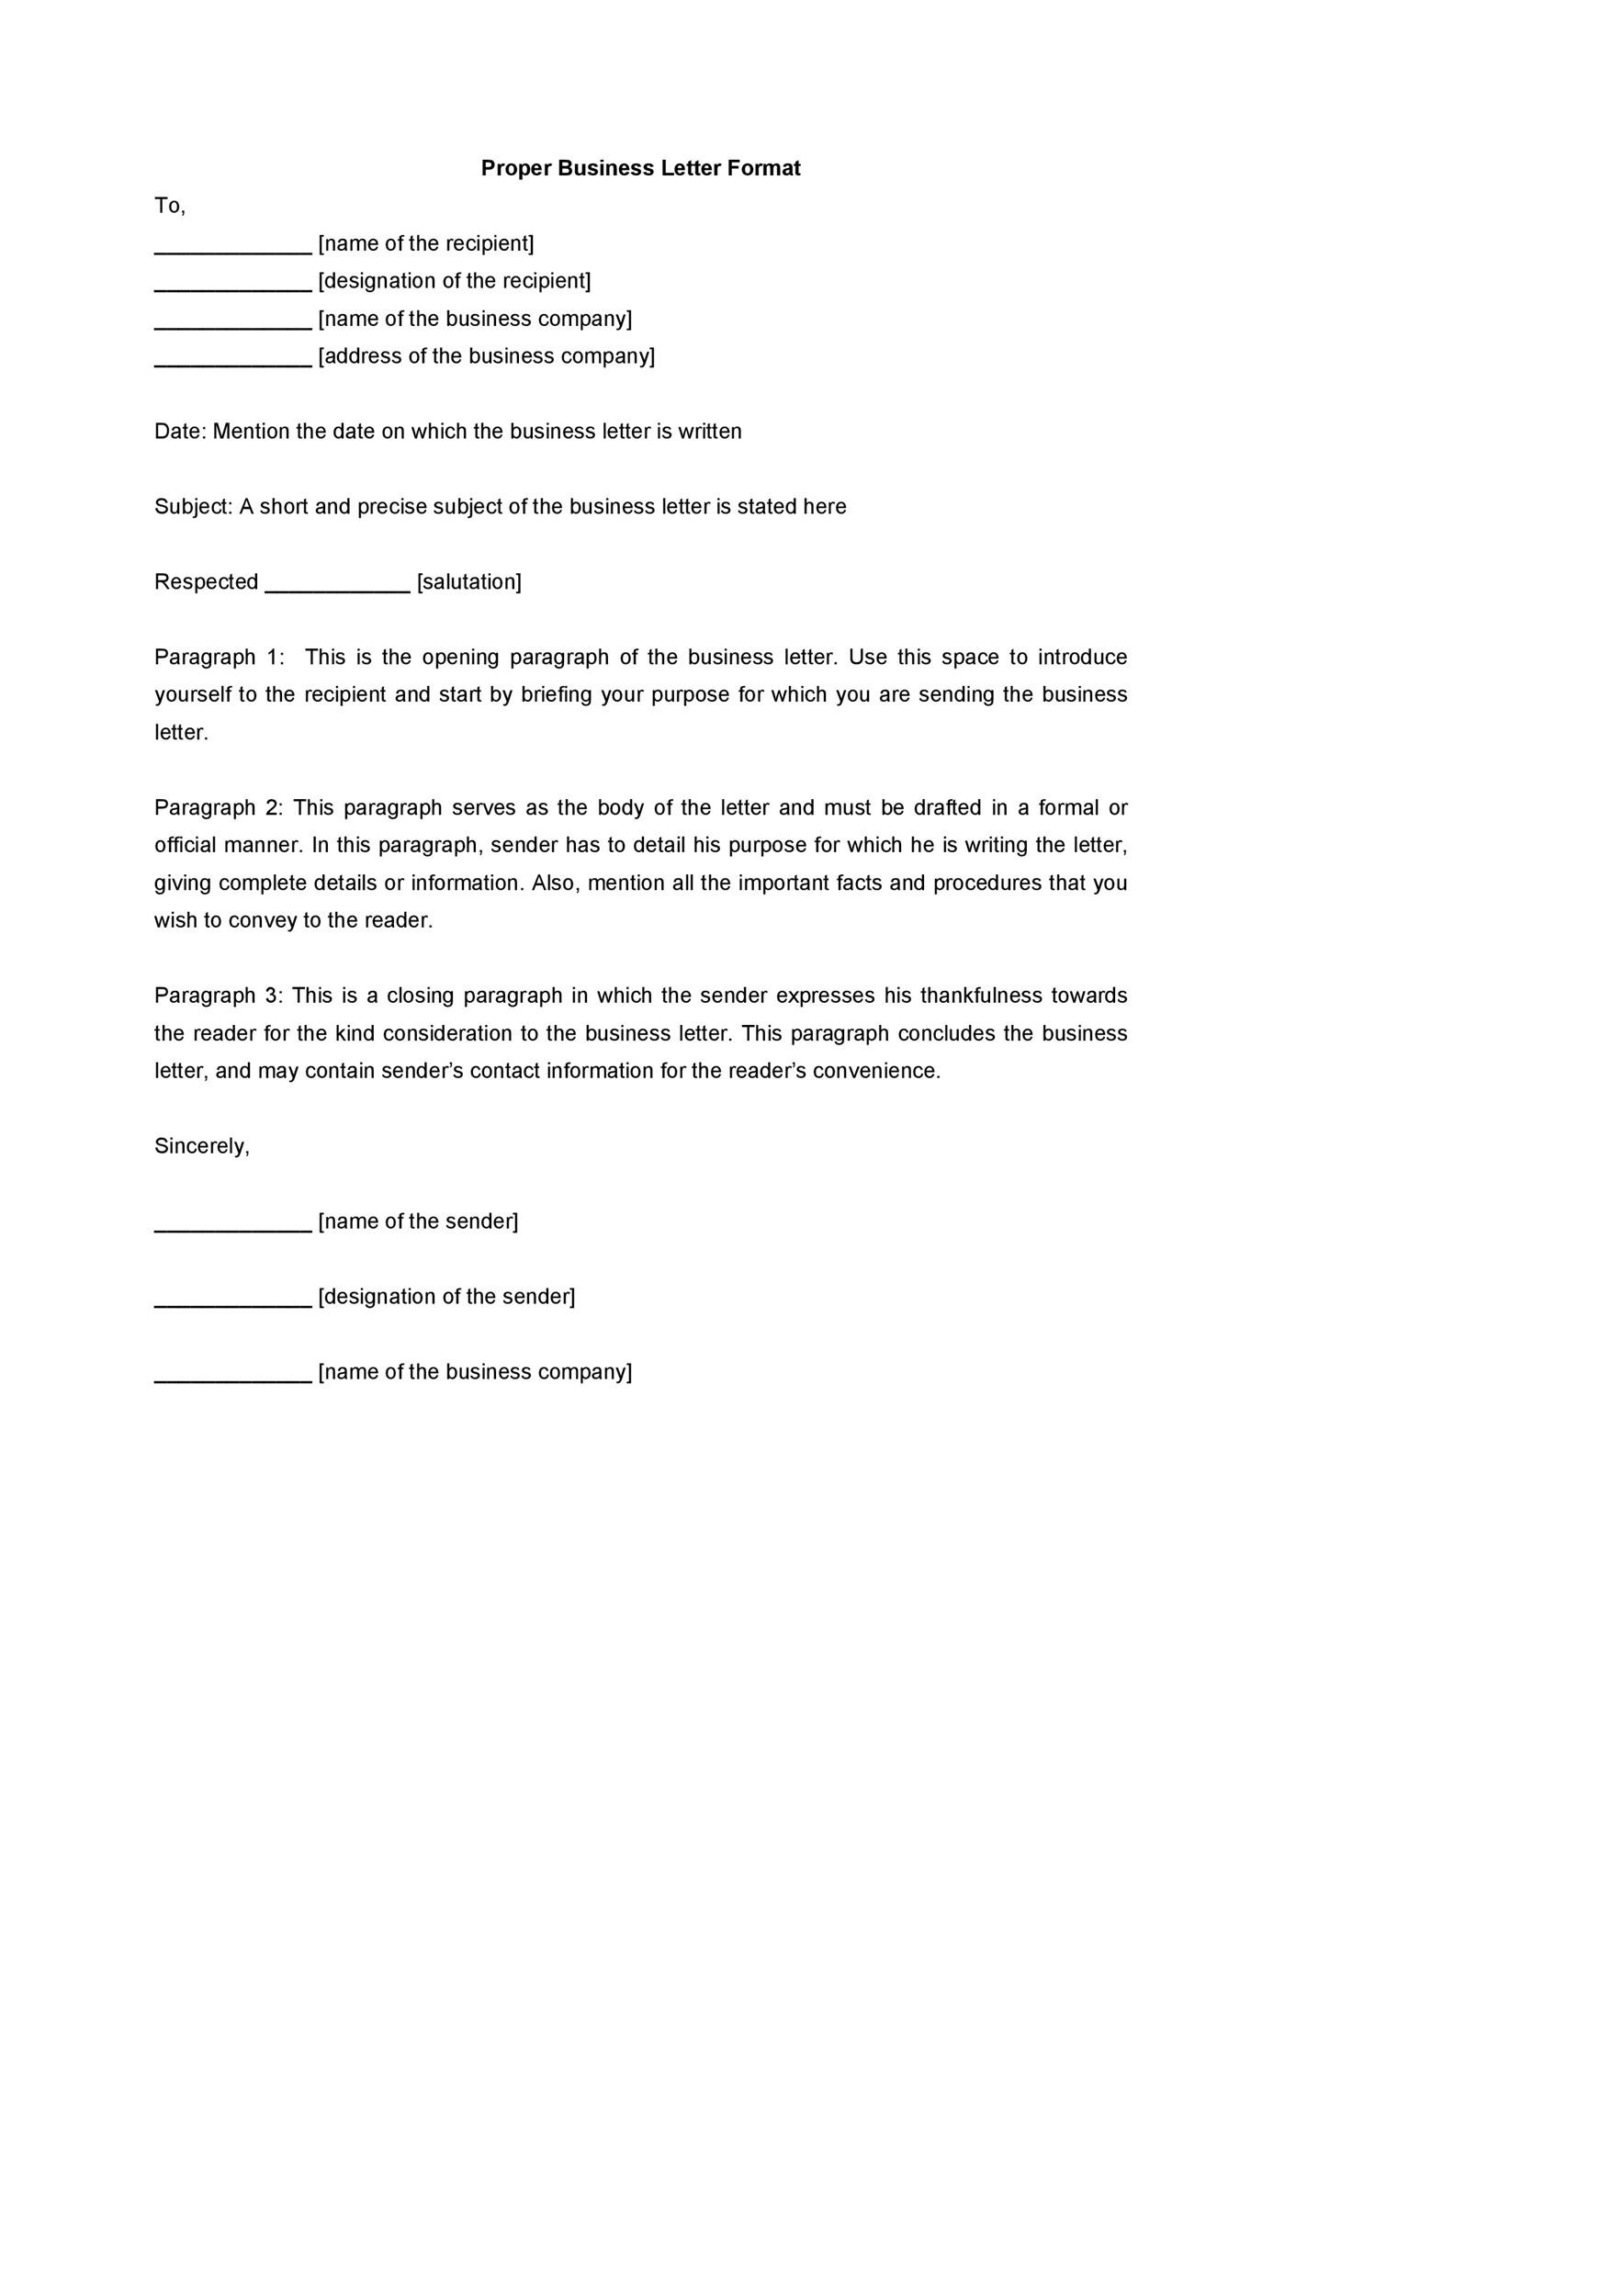 35 Formal Business Letter Format Templates Examples Template Lab – Formal Business Letter Format